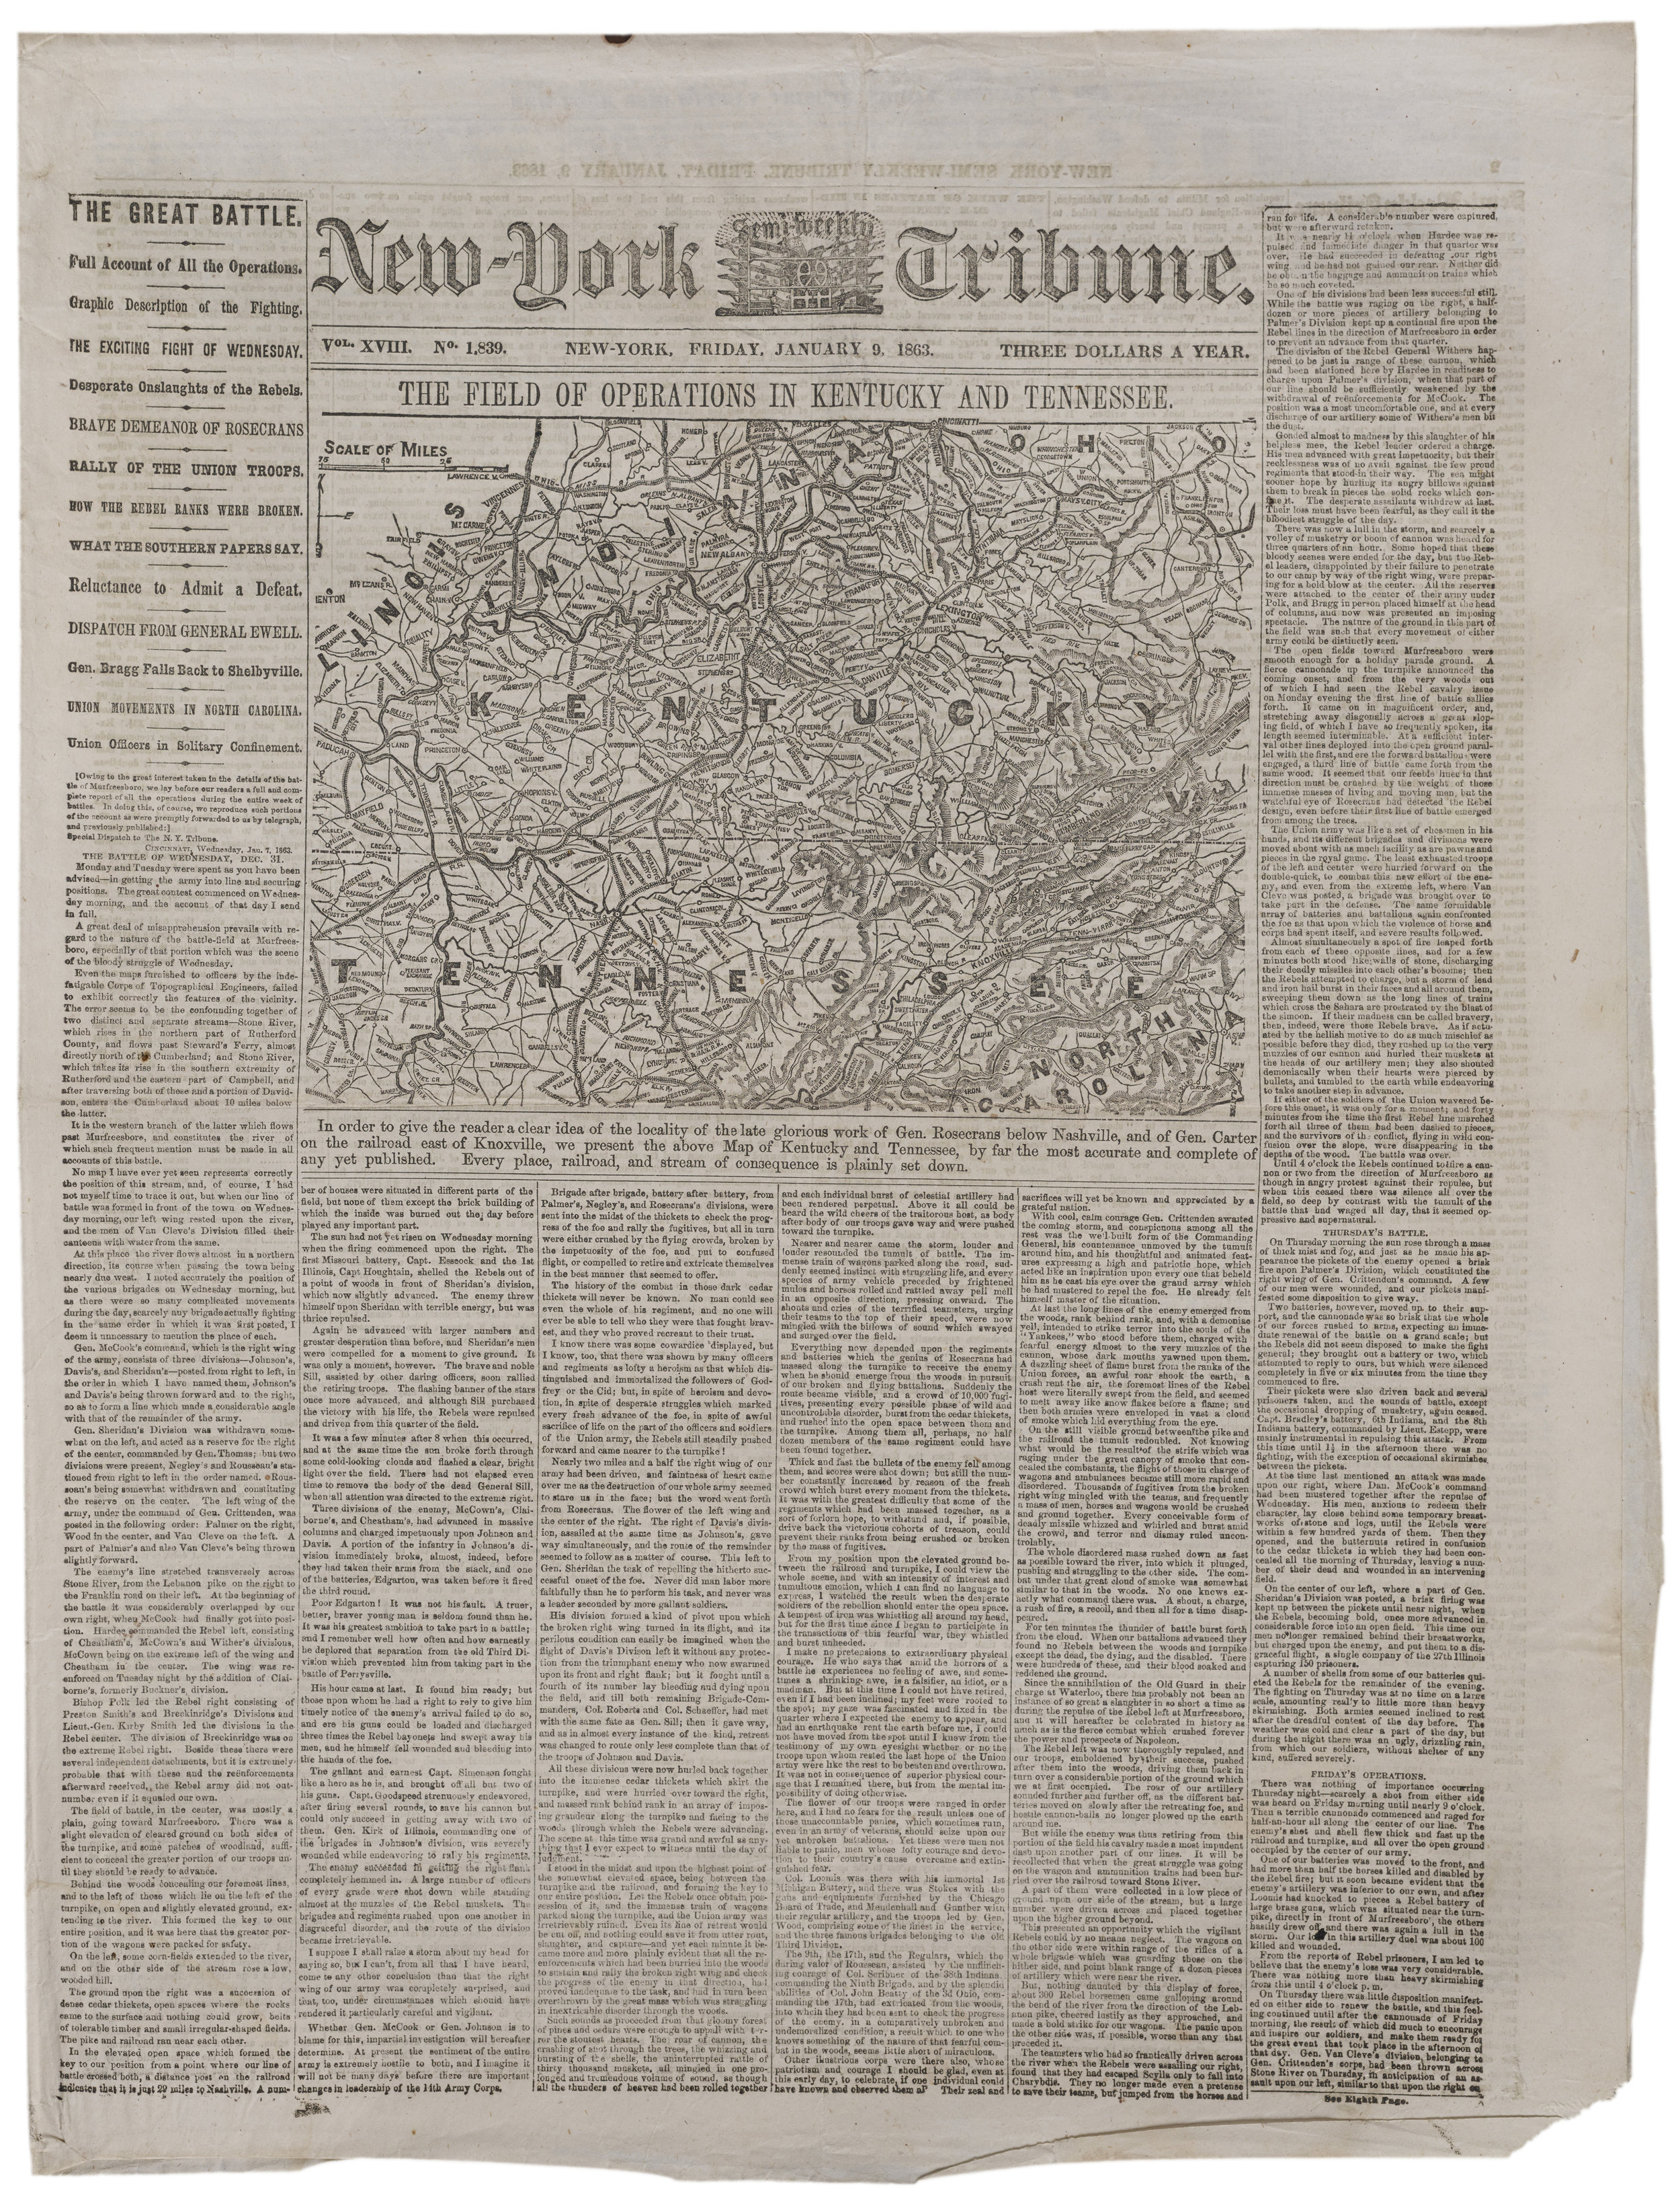 The January 9, 1863 edition of the  New-York Semi-Weekly Tribune .